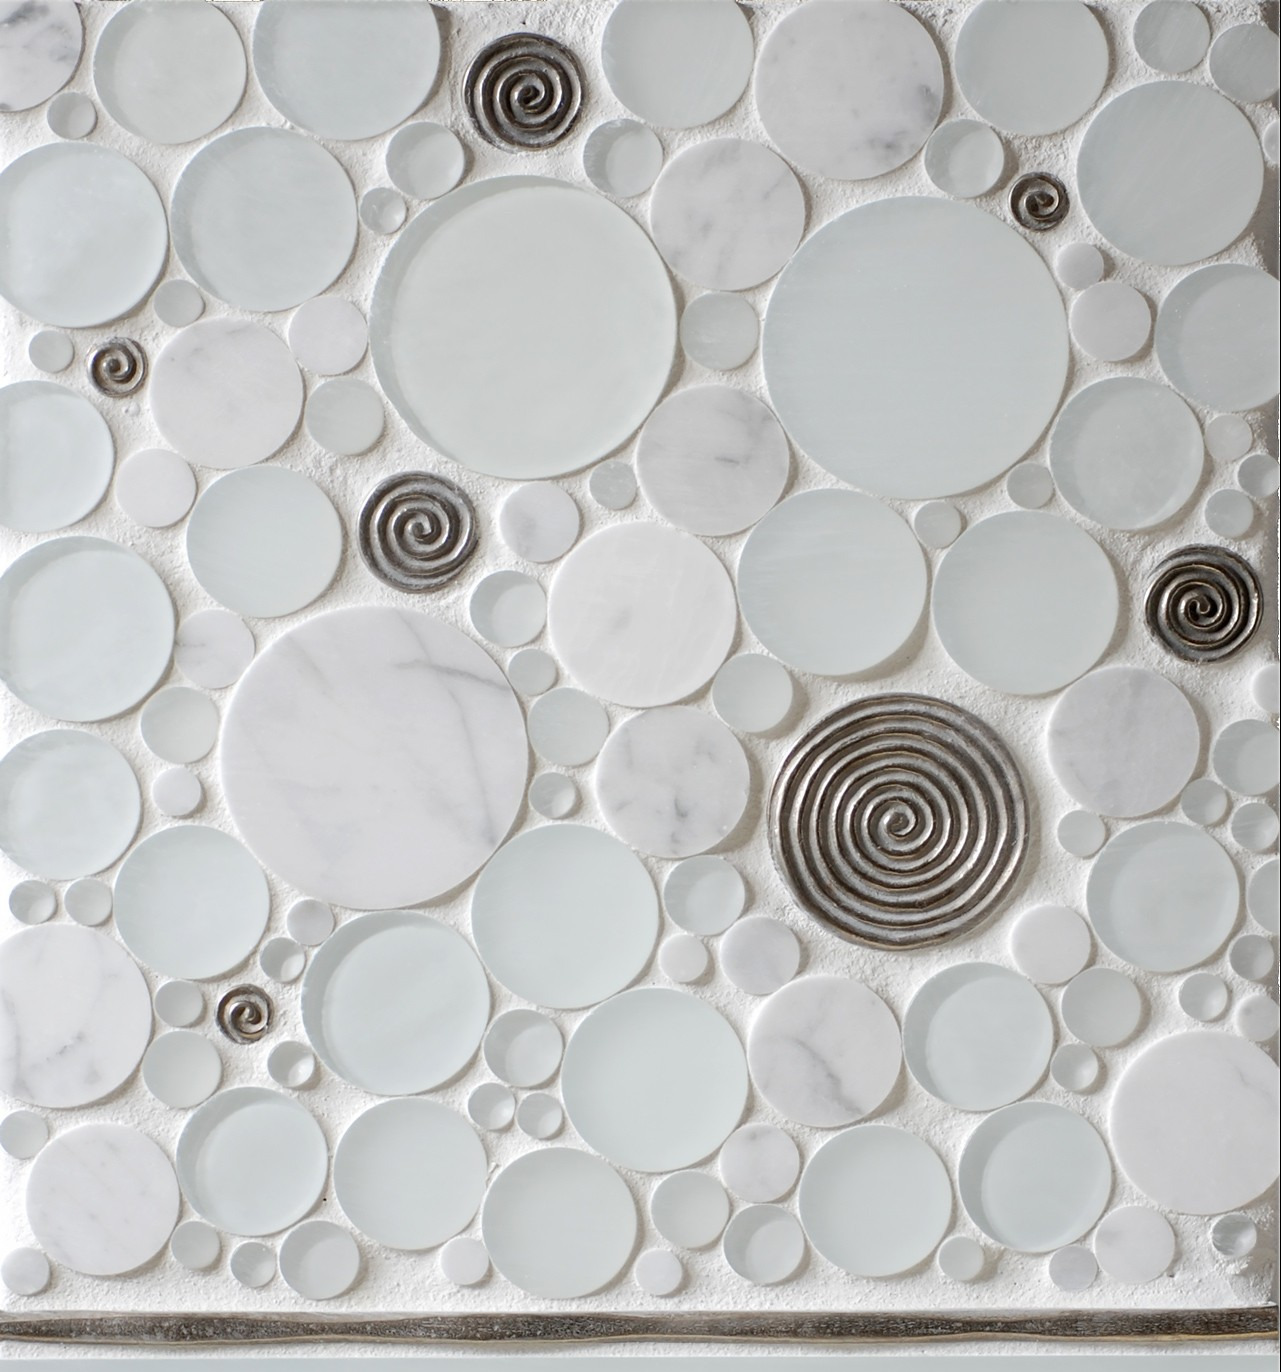 Metal accent tiles and liner: Petrogylph and Flowing Liner in White Bronze with marble and glass